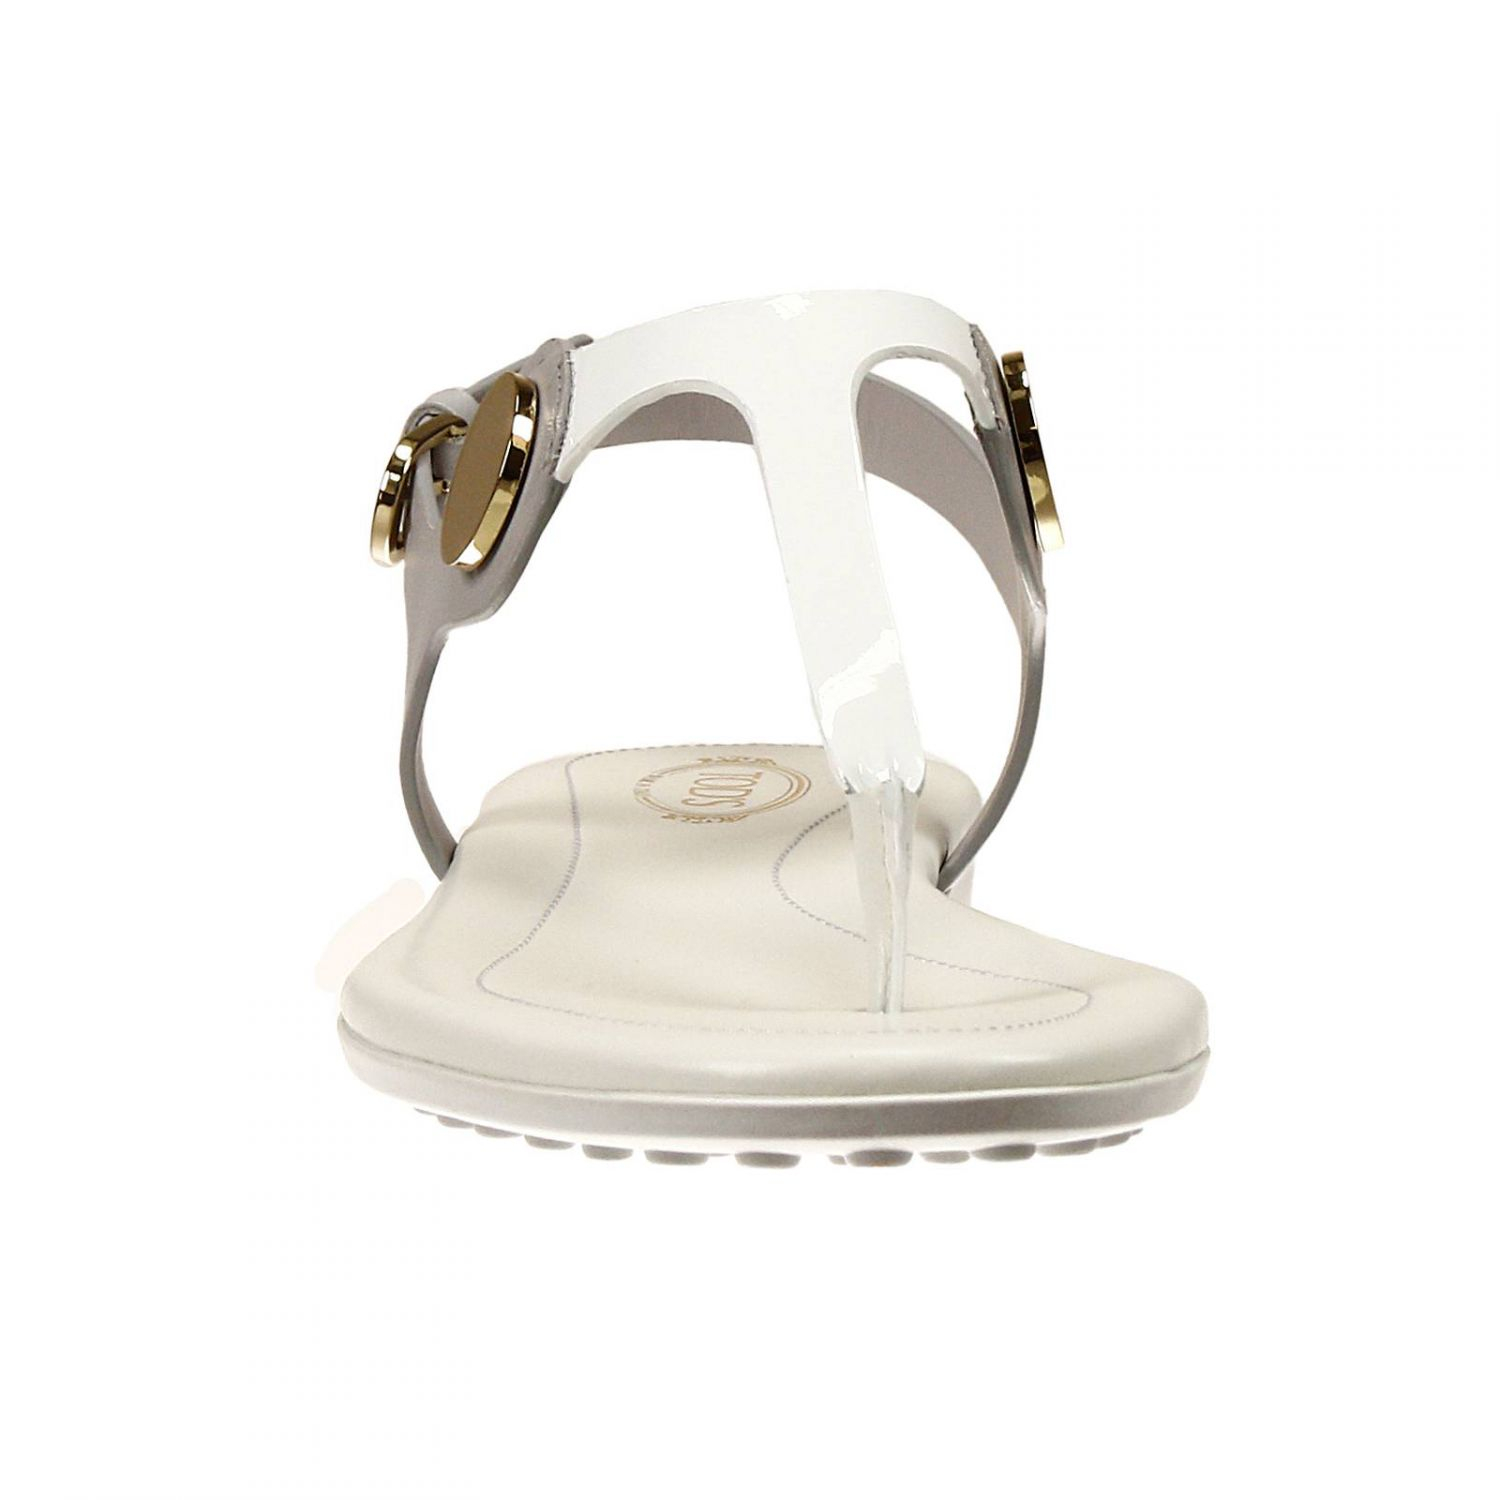 Tods Flat Shoes Shoes Sandal Flip Flops Leather And -8867